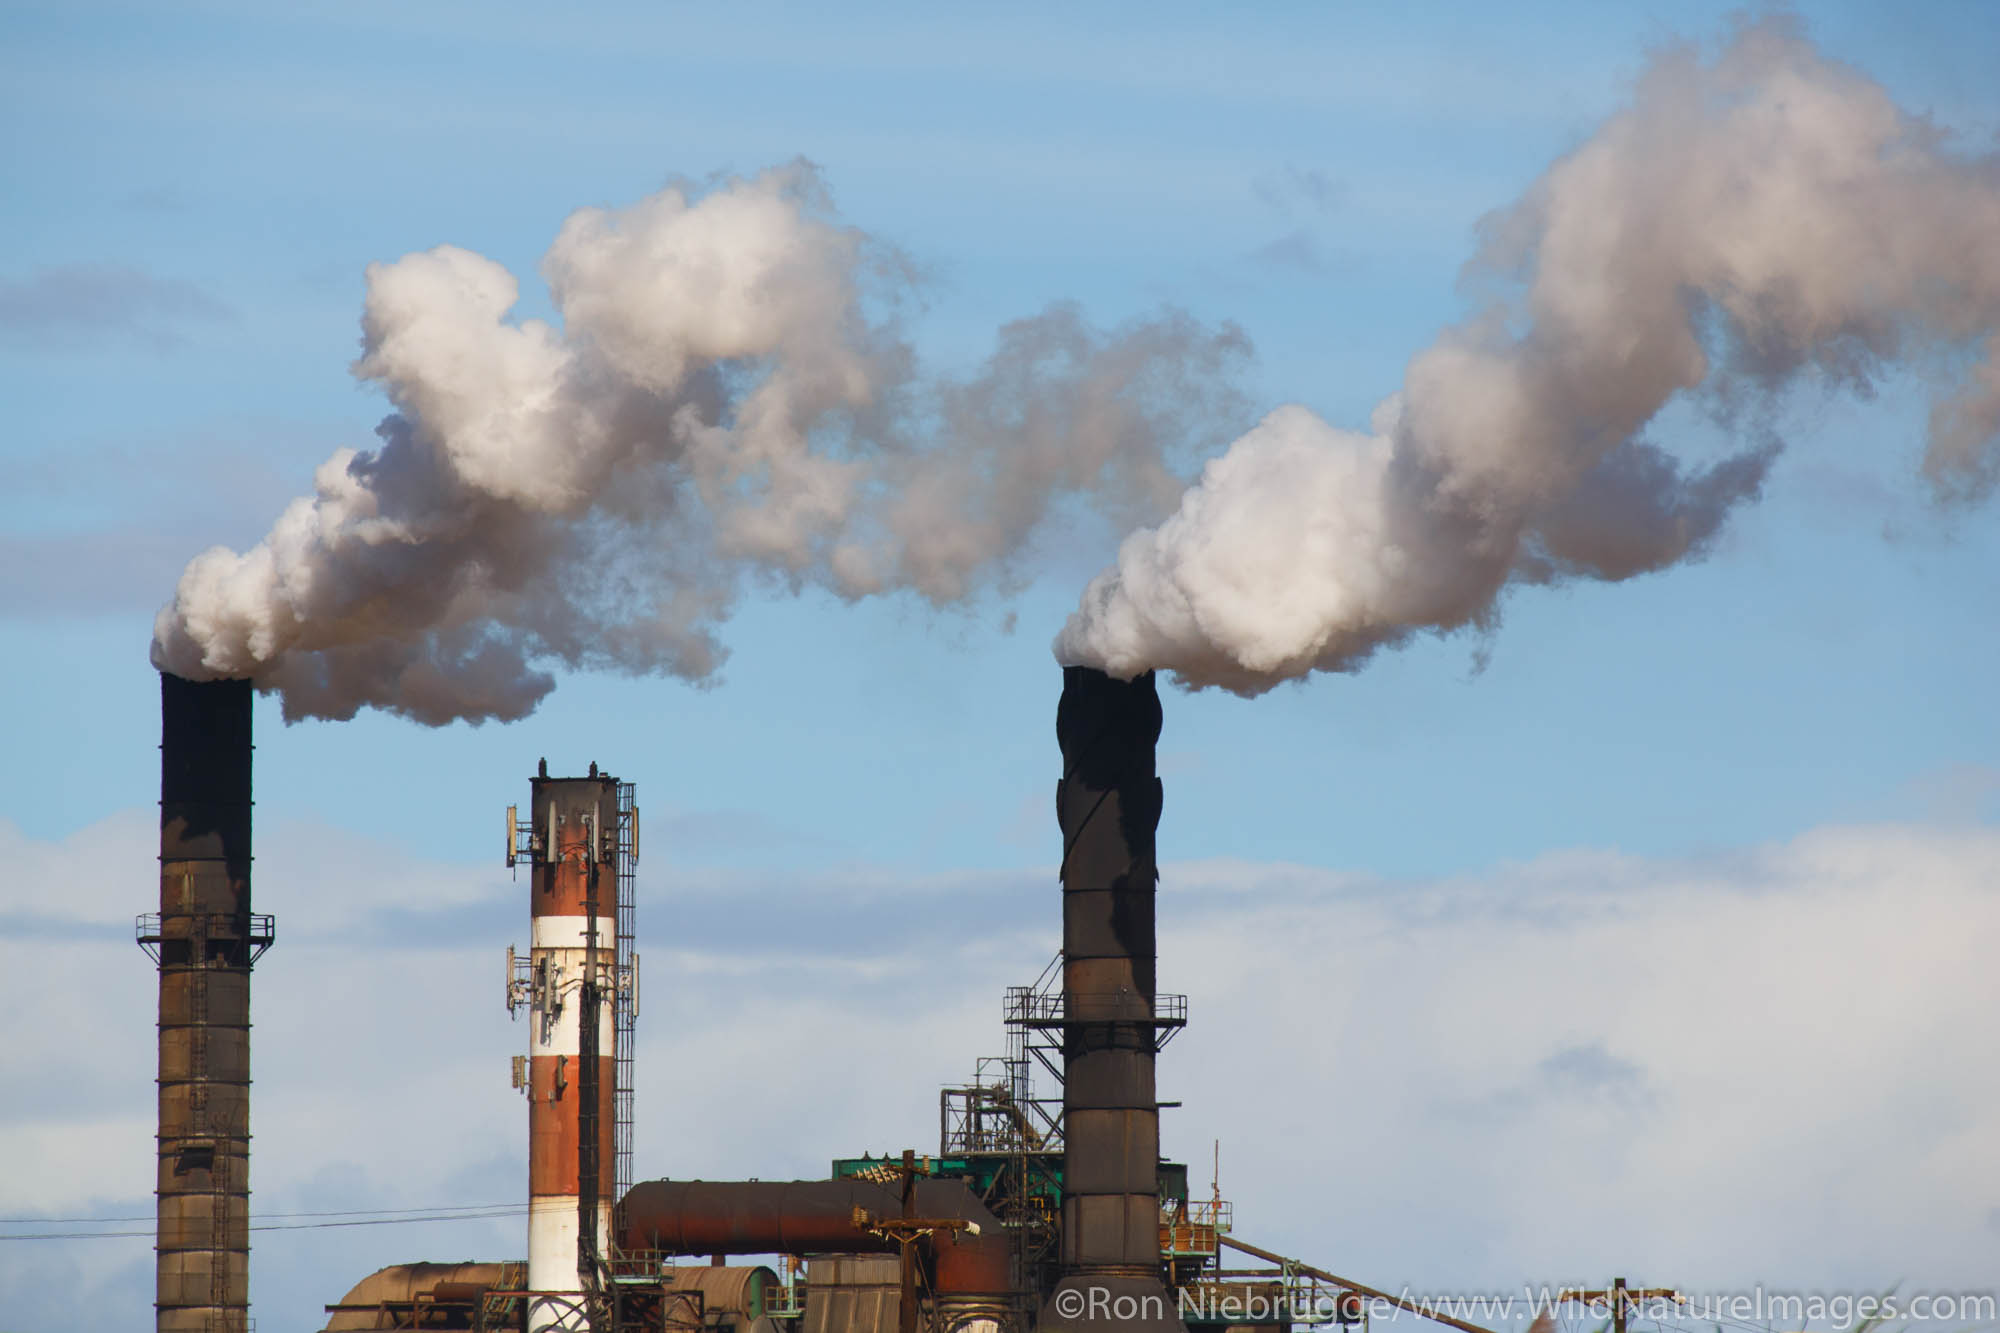 Emissions from Hawaiian Commercial and Sugar plant, Maui, Hawaii.